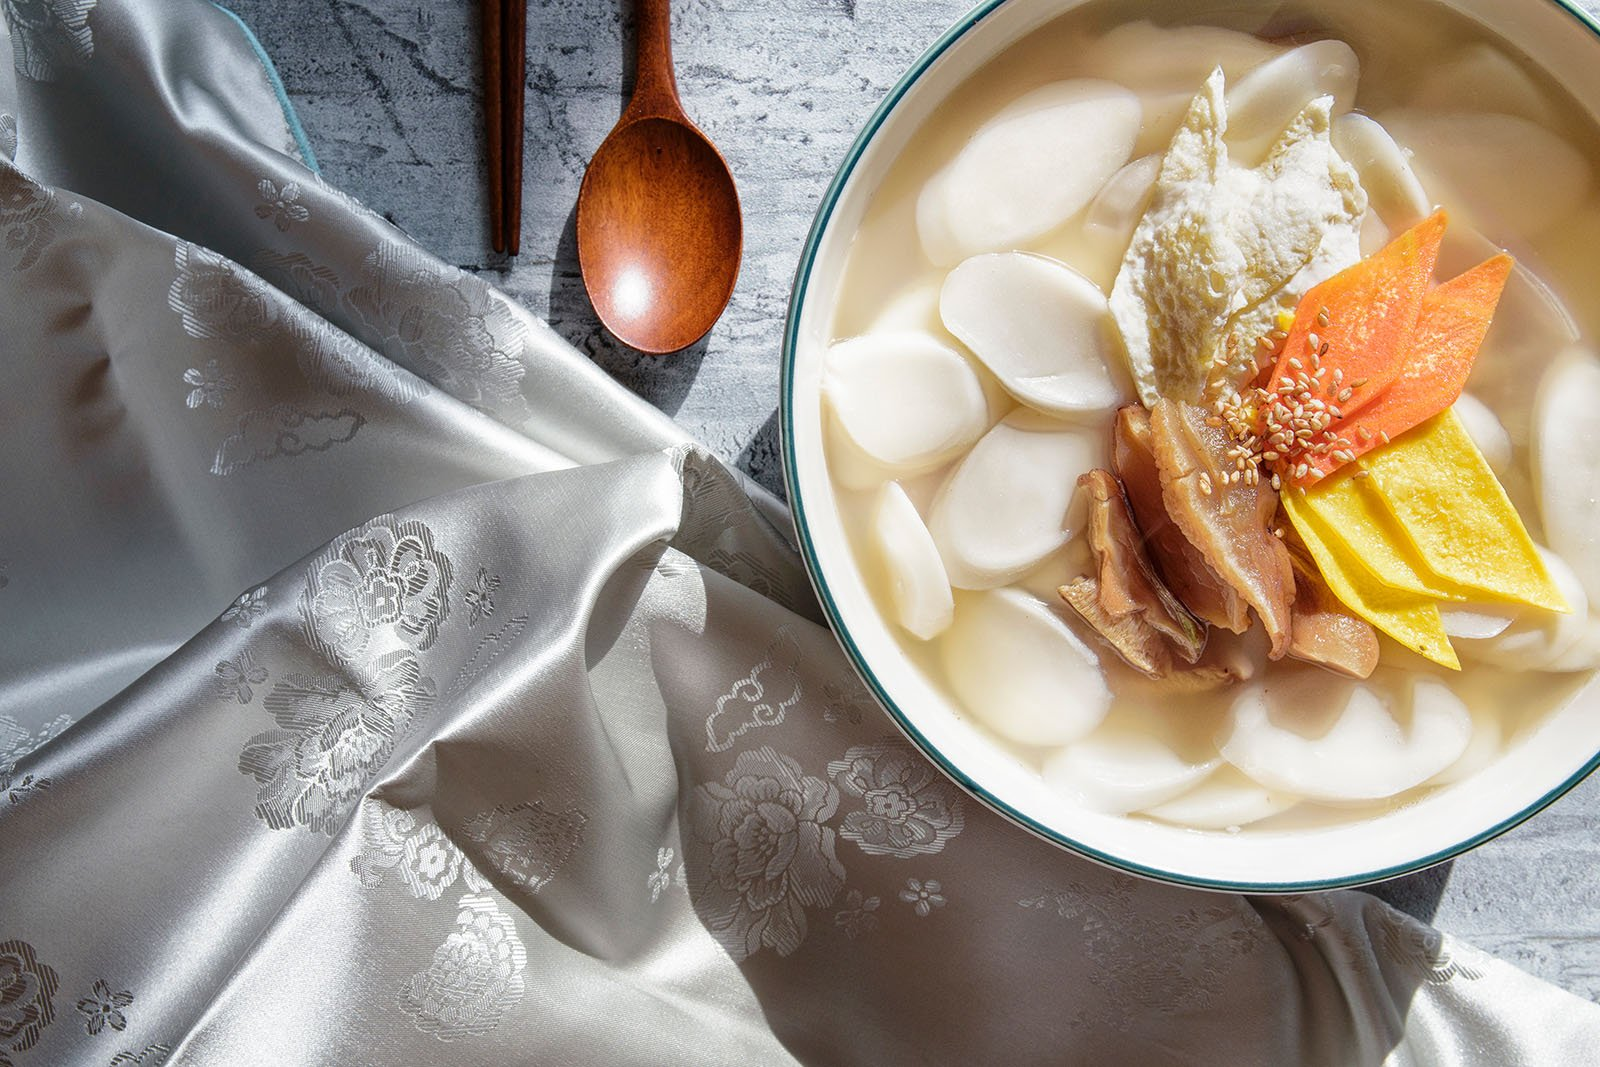 5 KOREAN NEW YEAR FOODS YOU SHOULD TRY